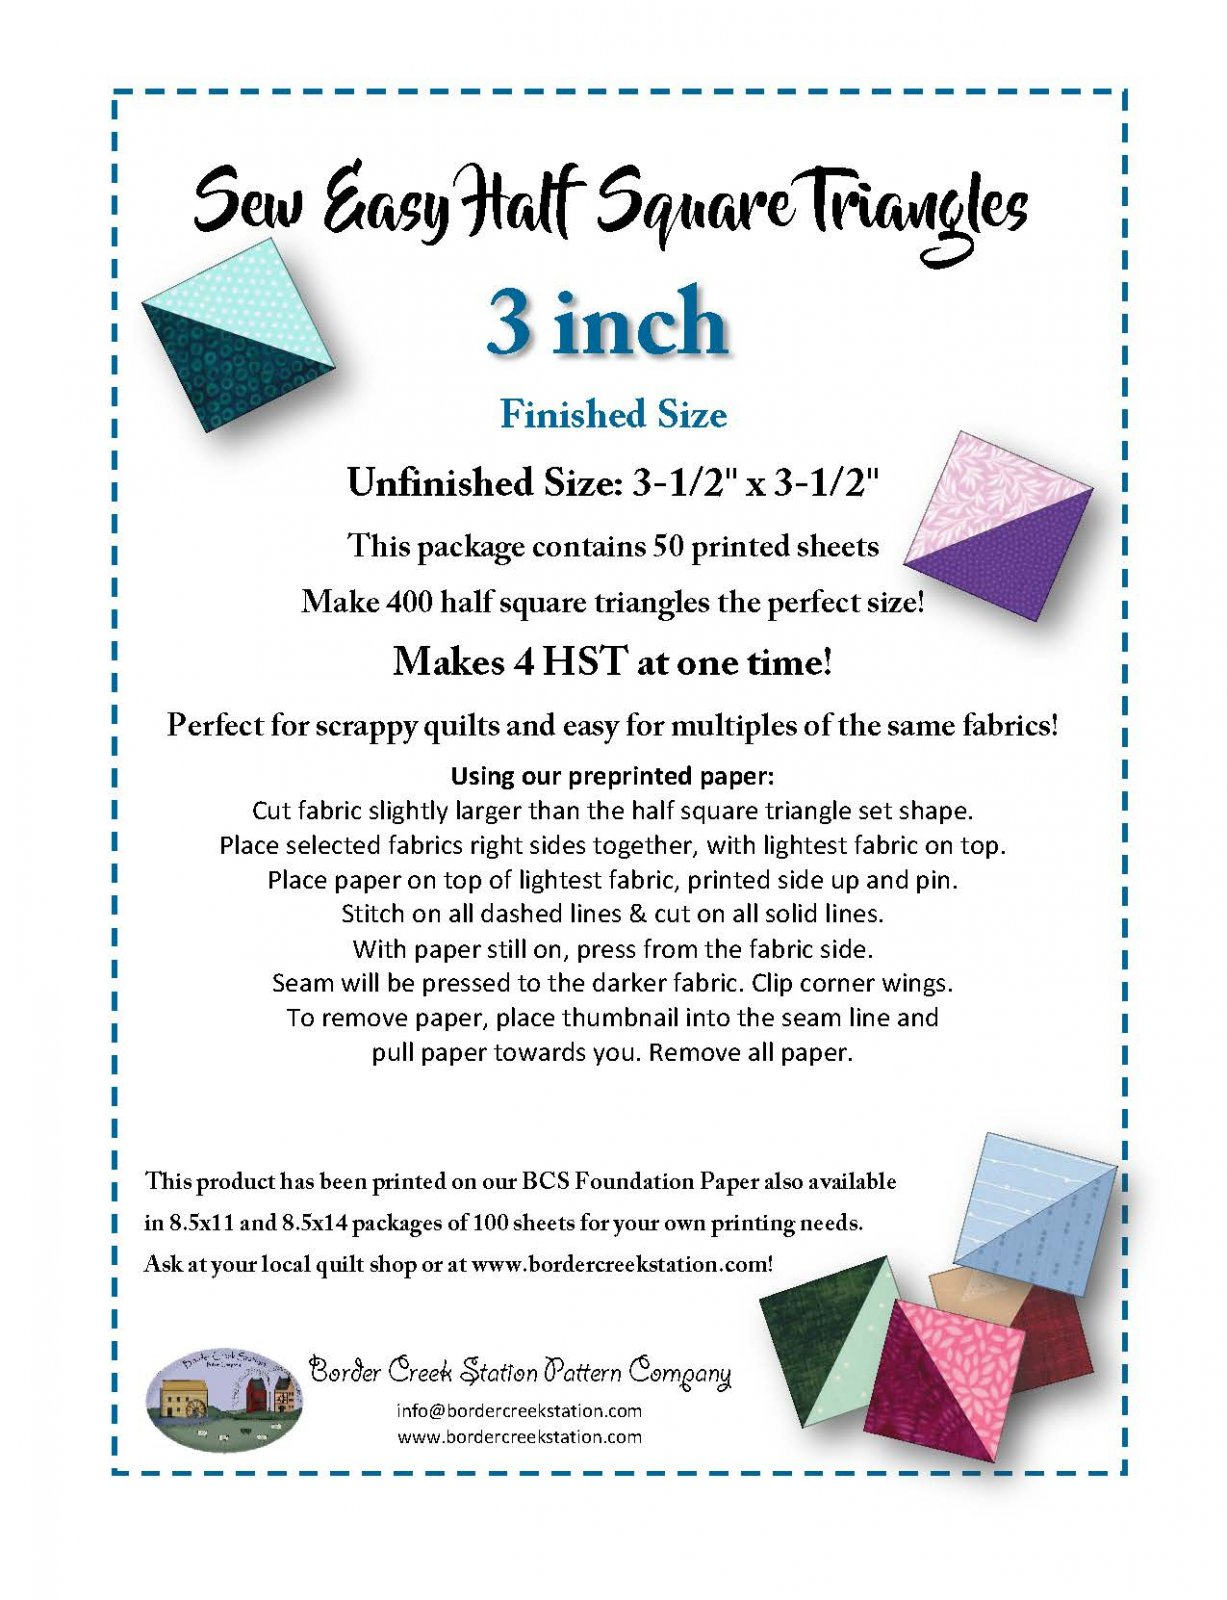 Sew Easy Half Square Triangle Paper for 3 finished size